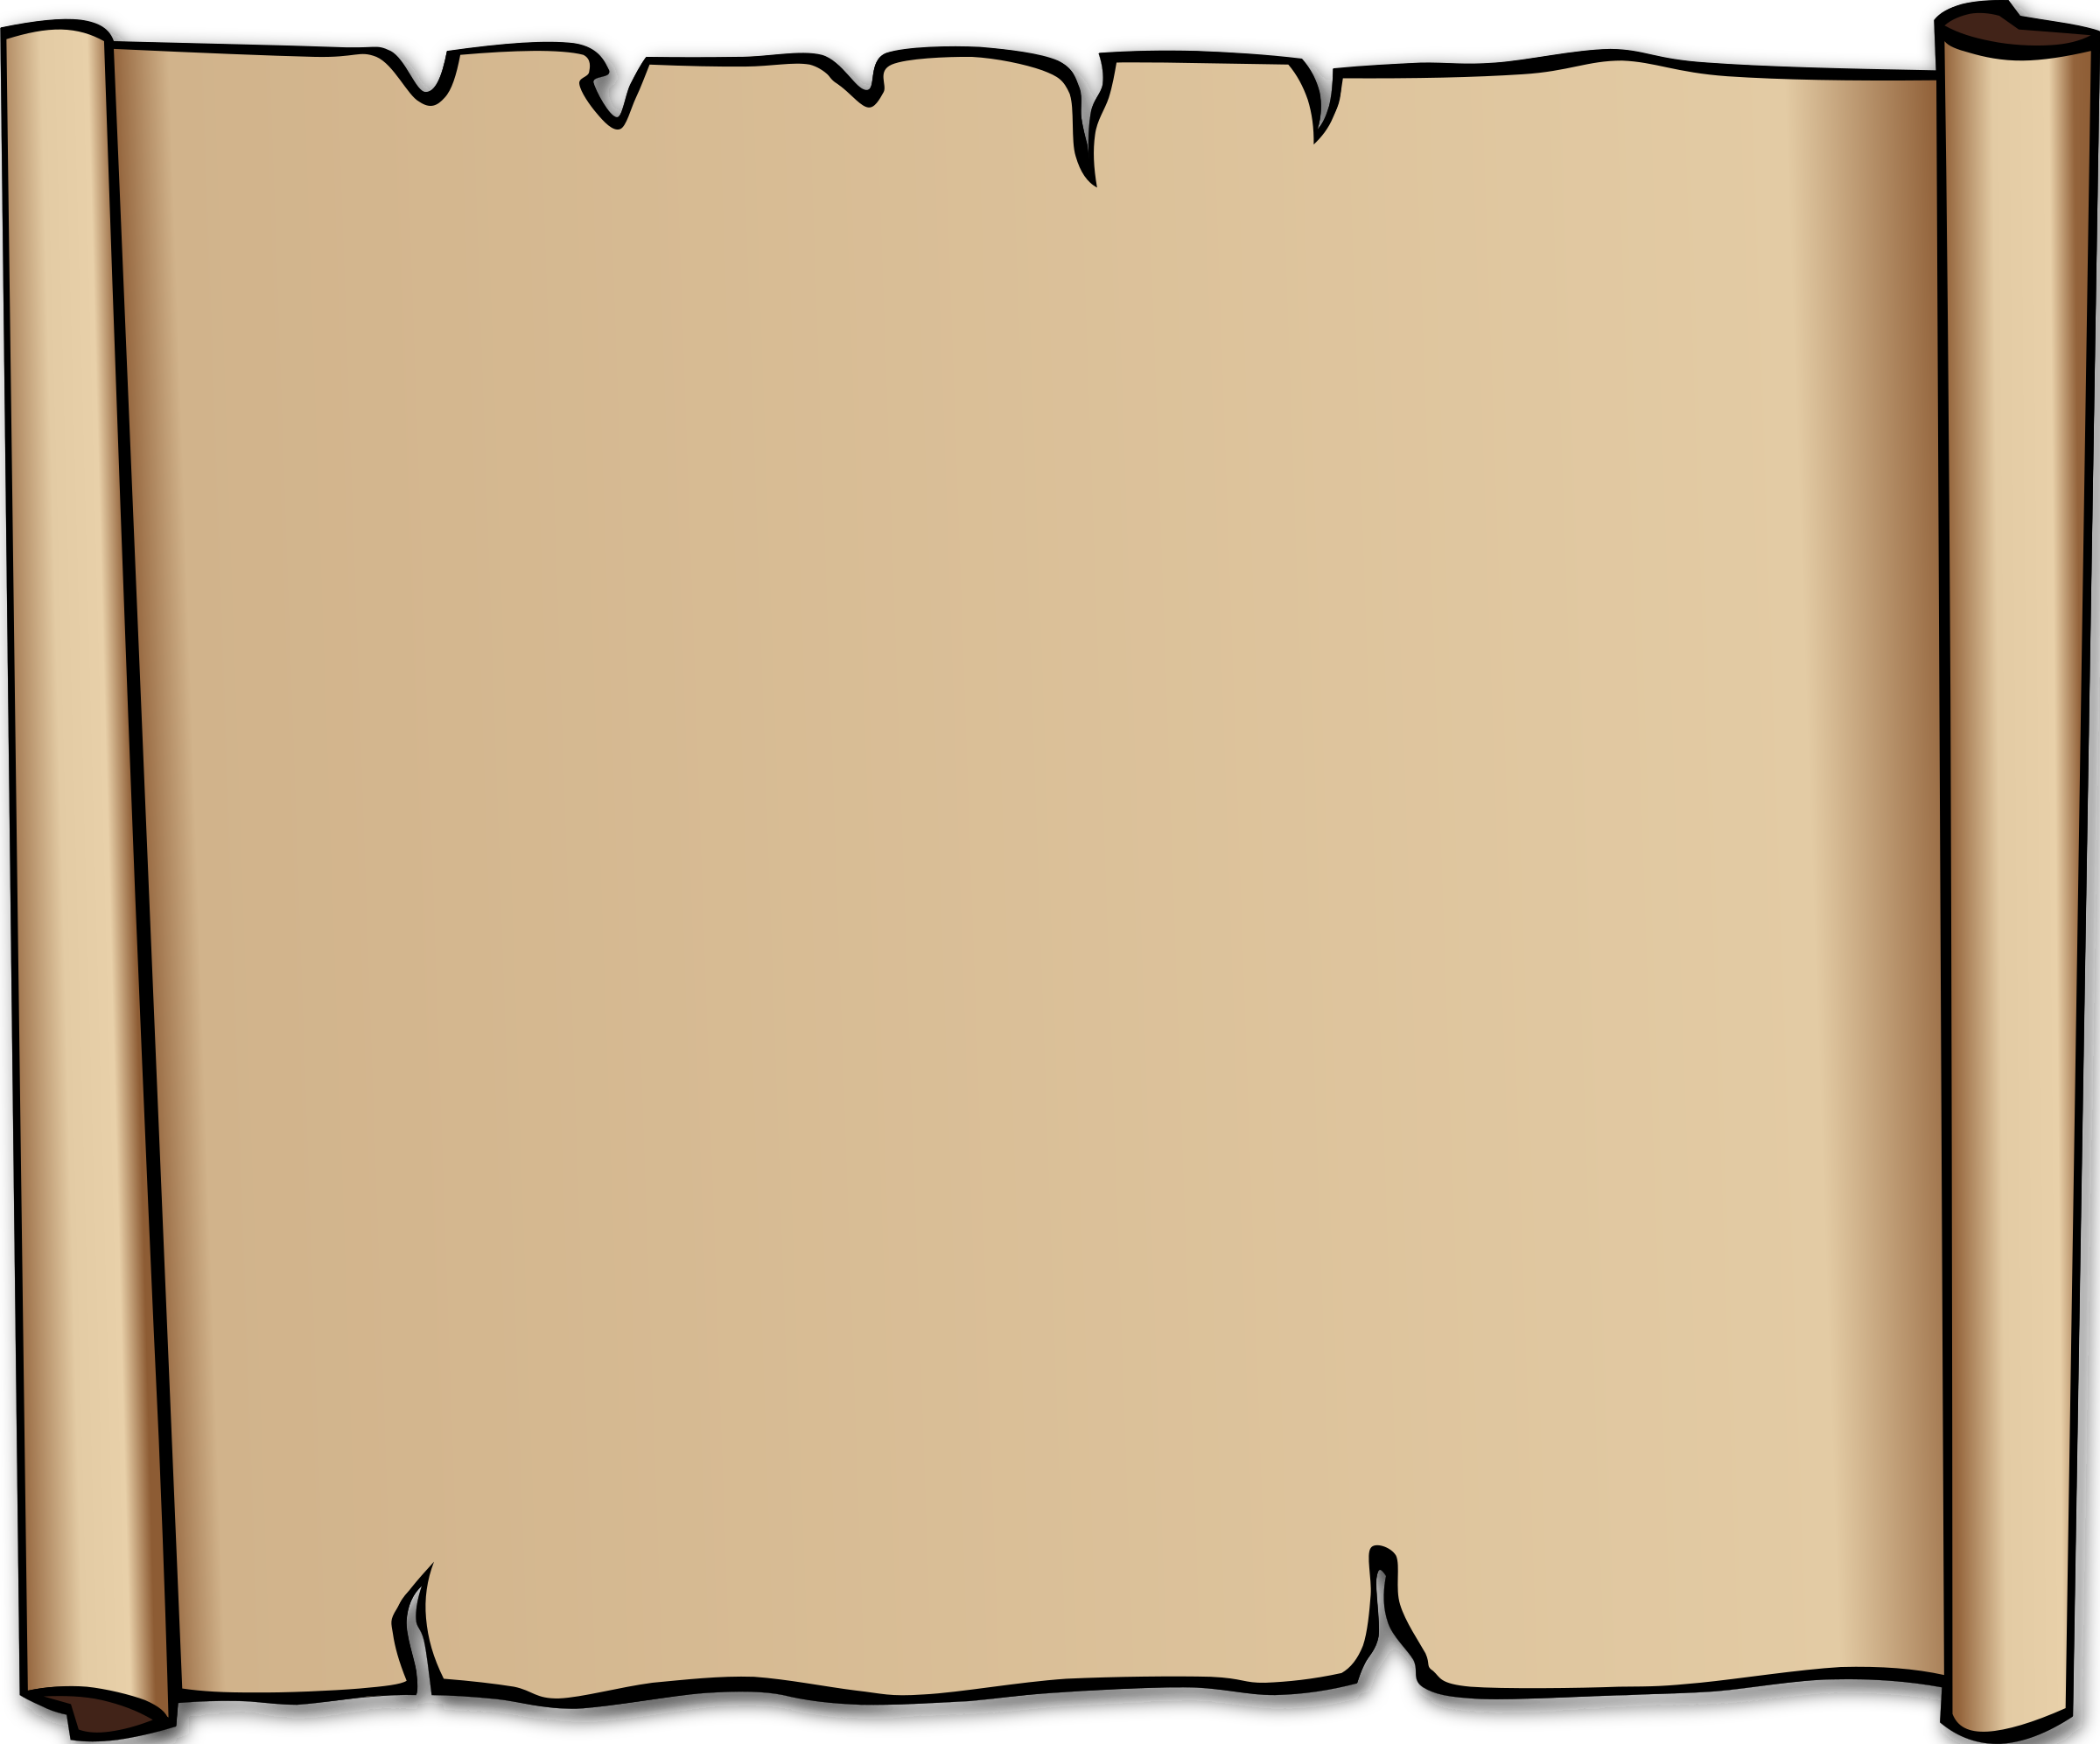 Parchment Background or Border by Gerald_G